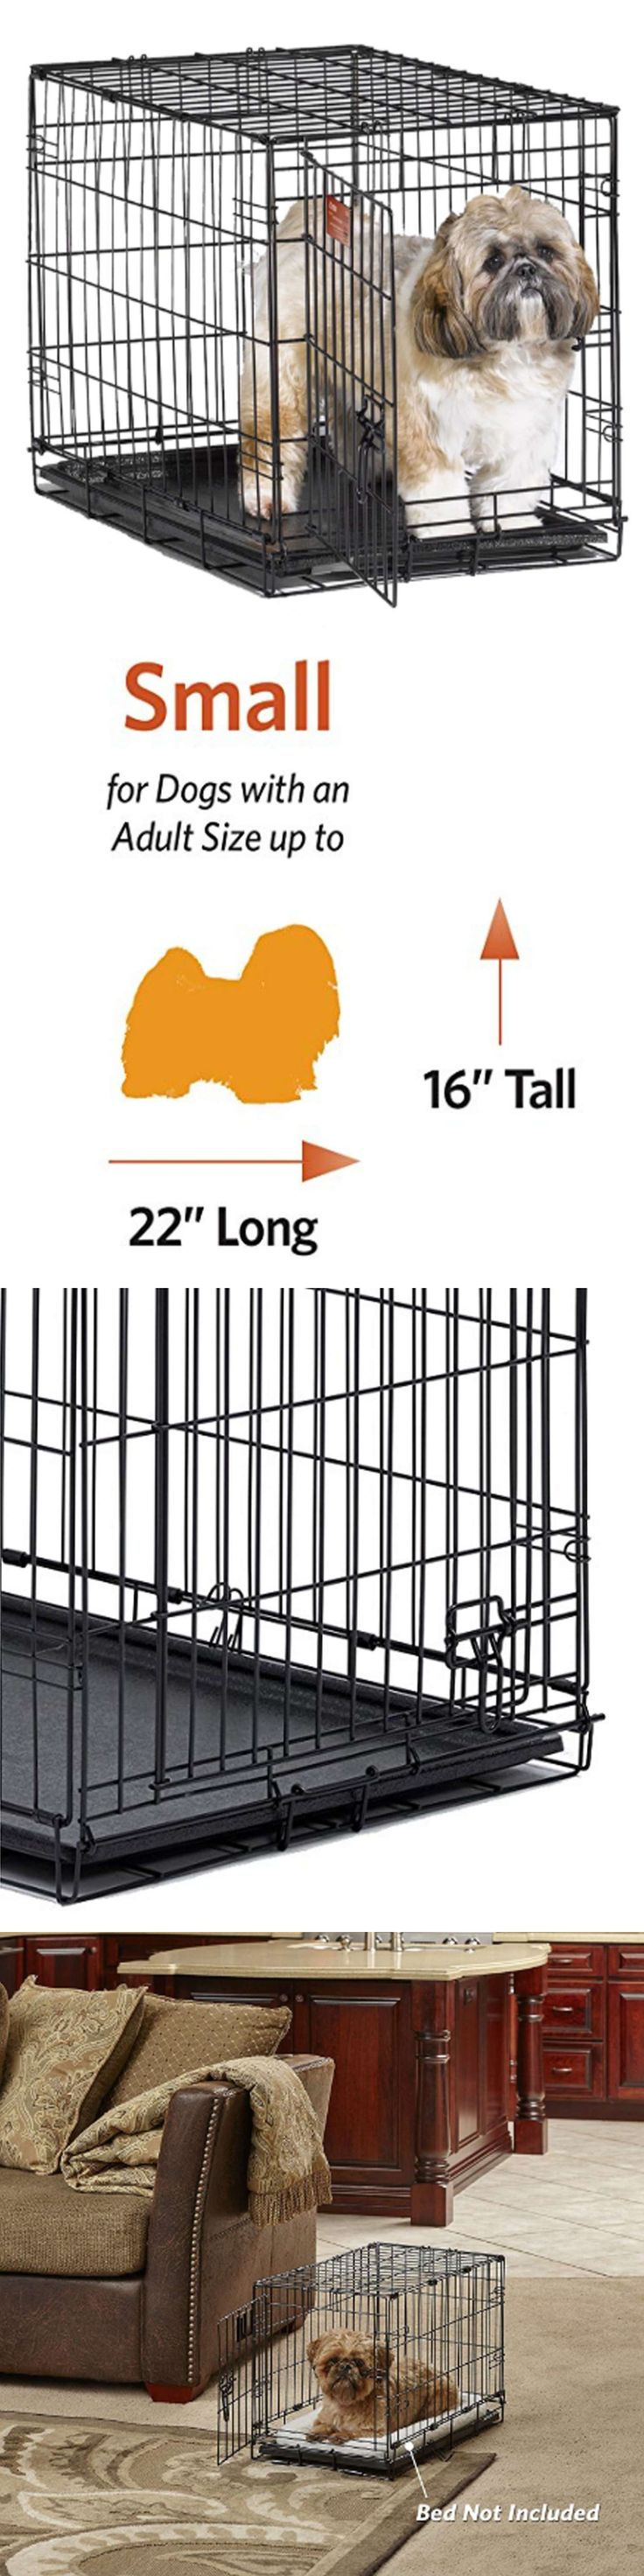 Cages and Crates 121851: Pet Kennel Dog Cat Cage Crate Animal 1Door W Divide Puppy Folding Steel 24 New -> BUY IT NOW ONLY: $52.6 on eBay!